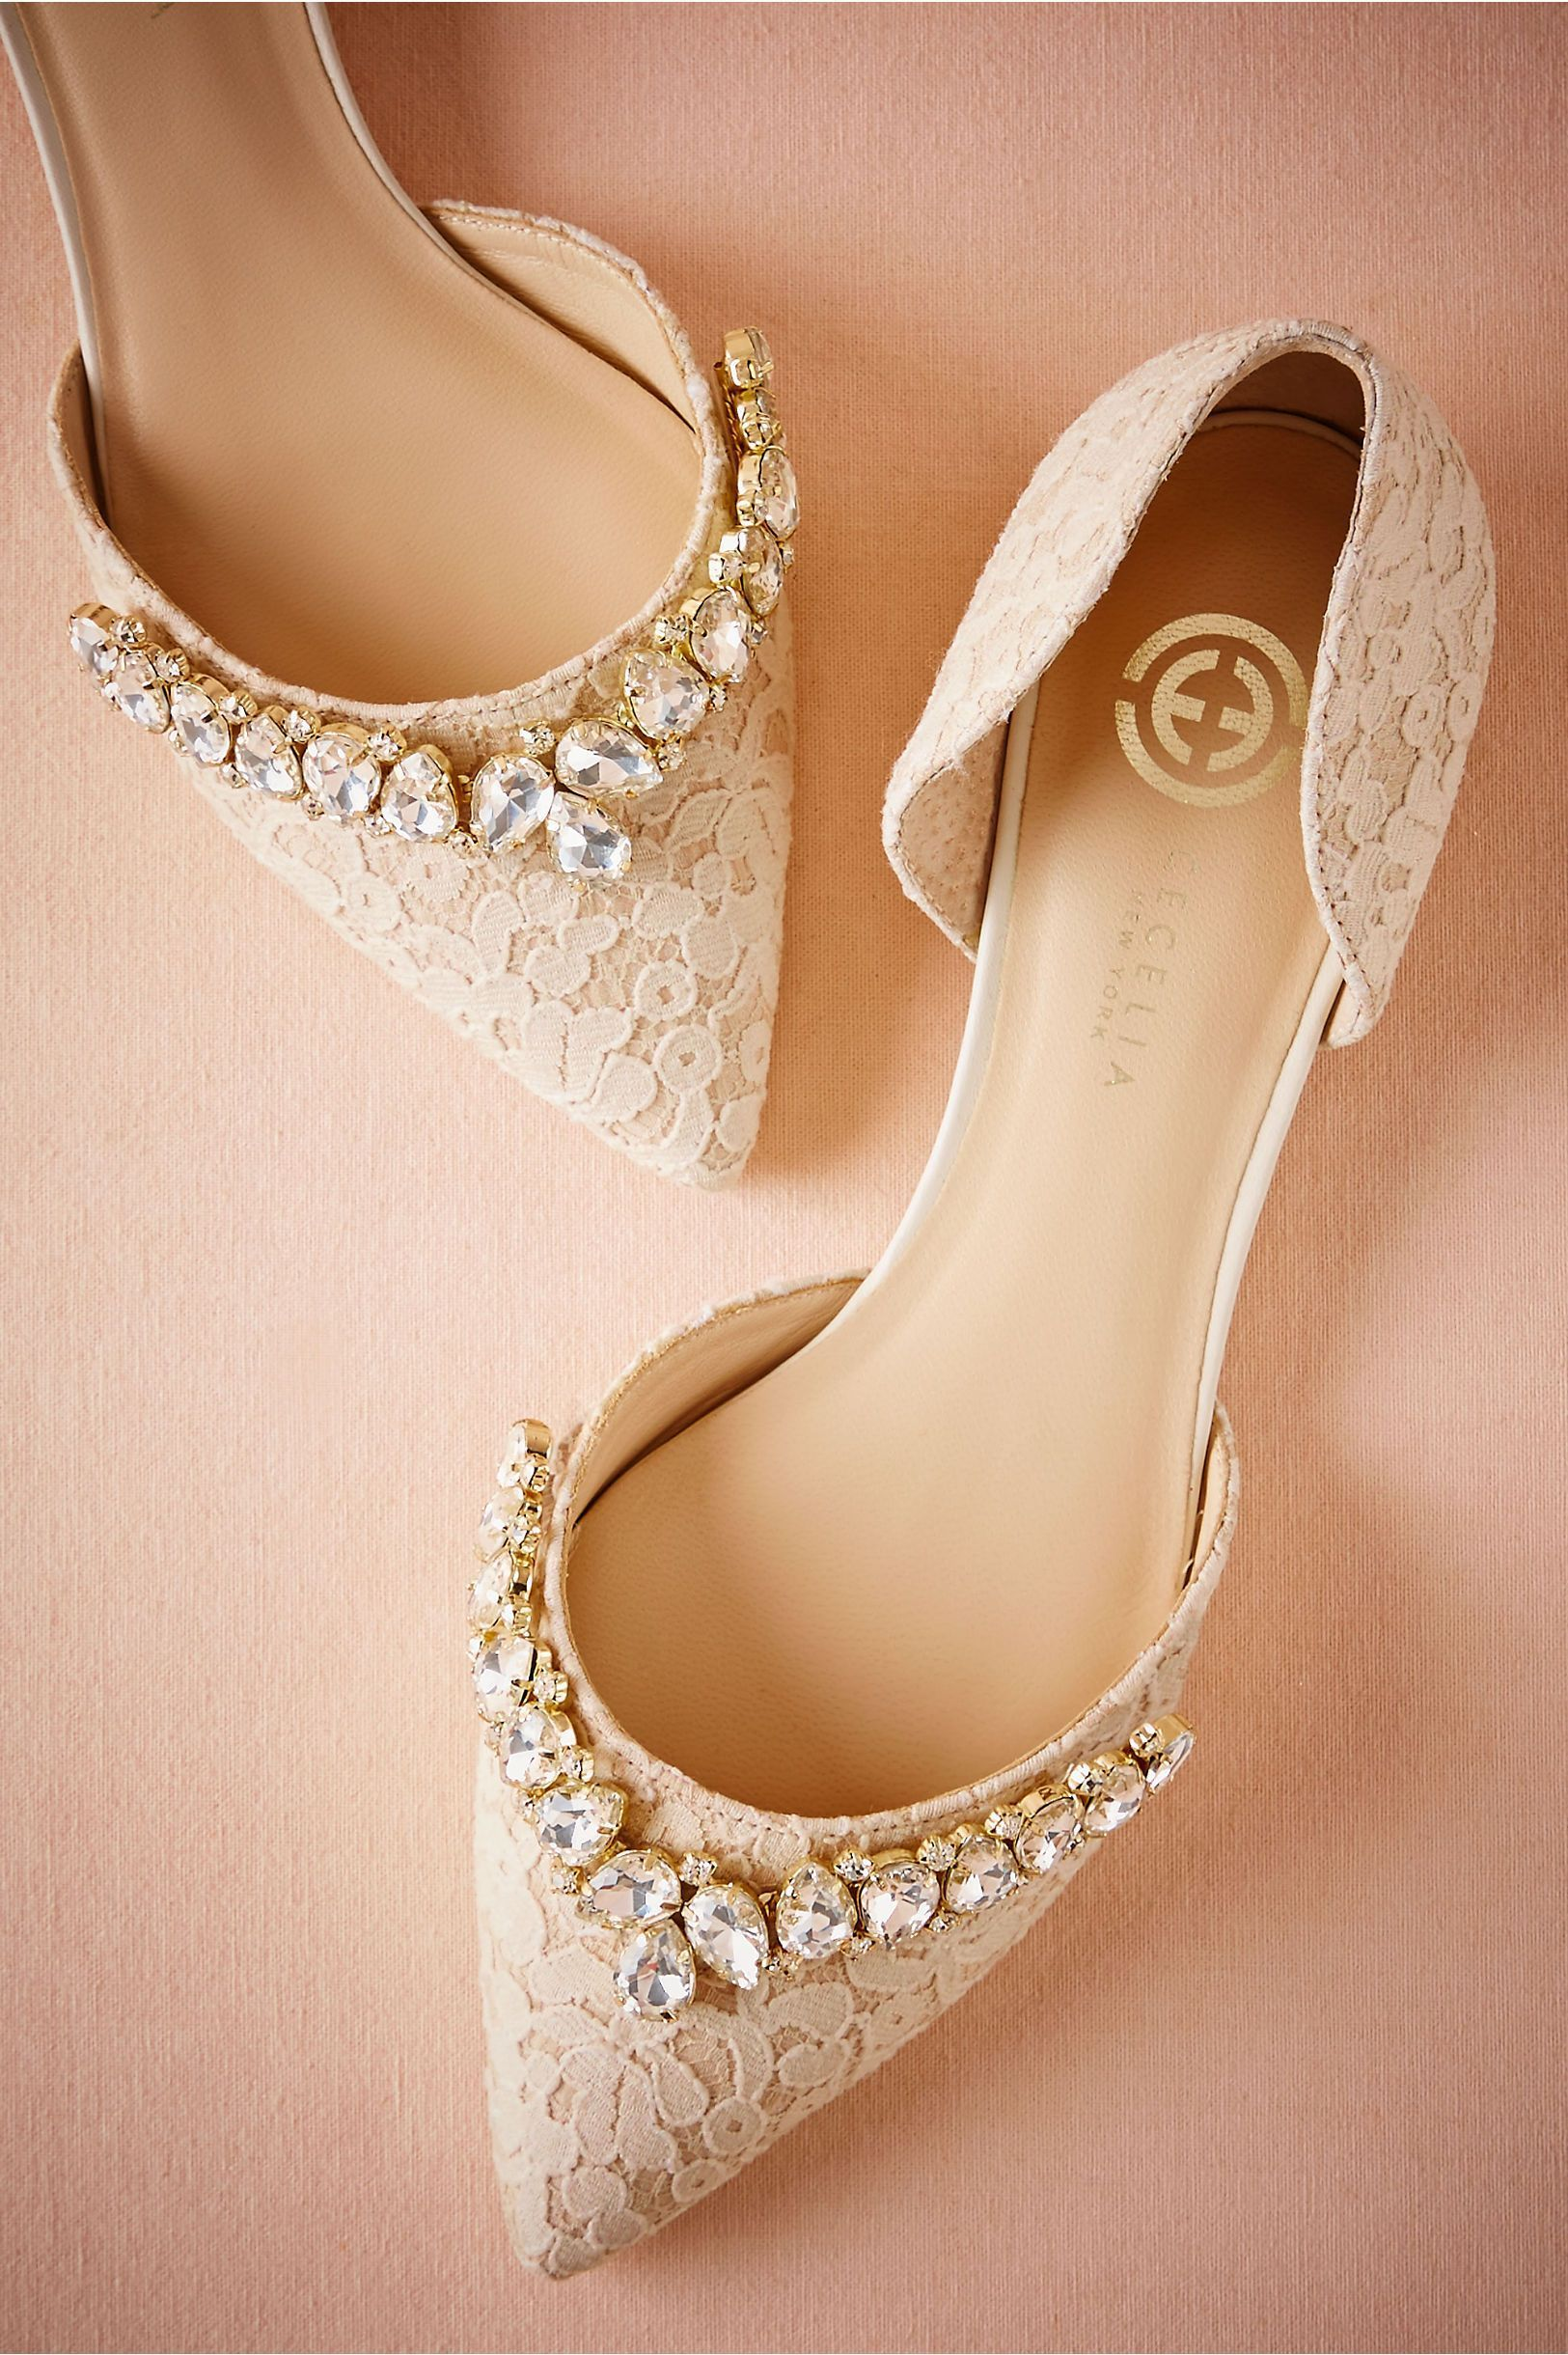 BHLDN Lotti Lace Flats in Shoes & Accessories Shoes at BHLDN ...